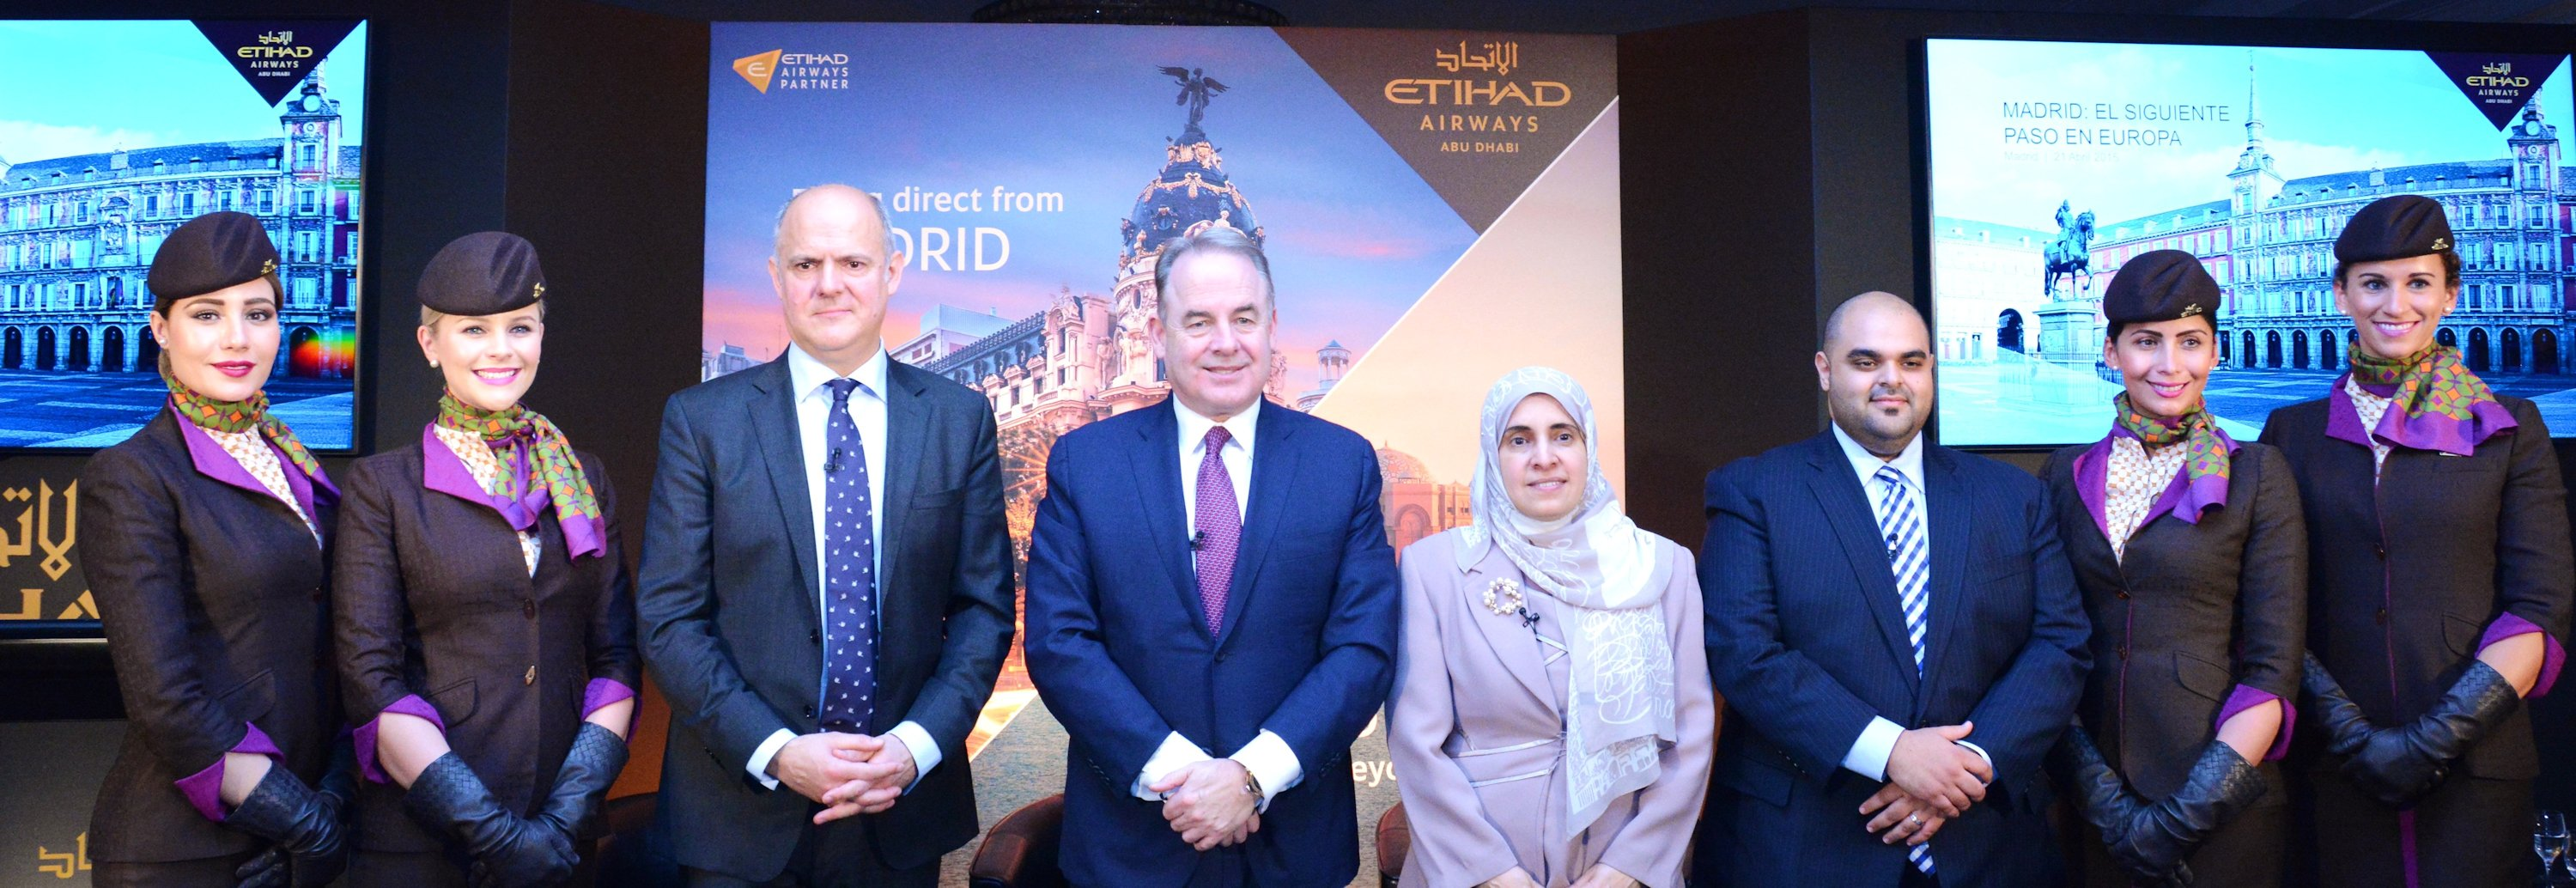 (left to right)Jordi Porcel, General Manager Spain, Etihad Airways; James Hogan,  President and Chief Executive Officer, Etihad Airways; Her Excellency Dr Hissa Abdulla  Ahmed Al-Otaiba, UAE Ambassador to the Kingdom of Spain; and Haitham Al Subaihi,  Vice President UAE Sales, Etihad Airways; at the airline's media conference in Madrid  on 21 April 2015.